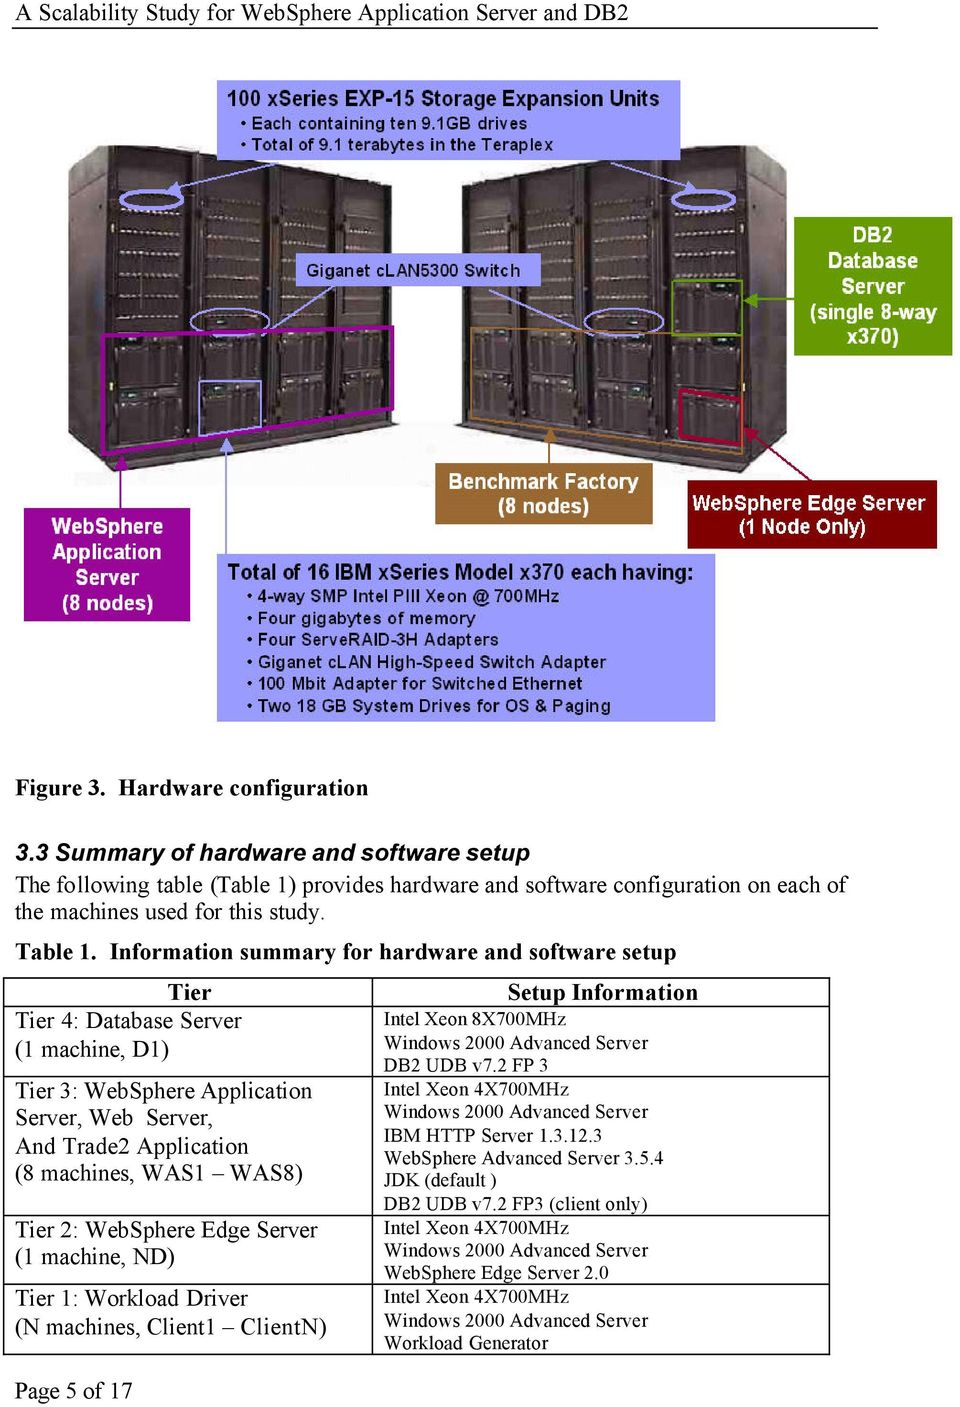 Information summary for hardware and software setup Tier Tier 4: Database (1 machine, D1) Tier 3: WebSphere Application, Web, And Trade2 Application (8 machines, WAS1 WAS8) Tier 2: WebSphere Edge (1